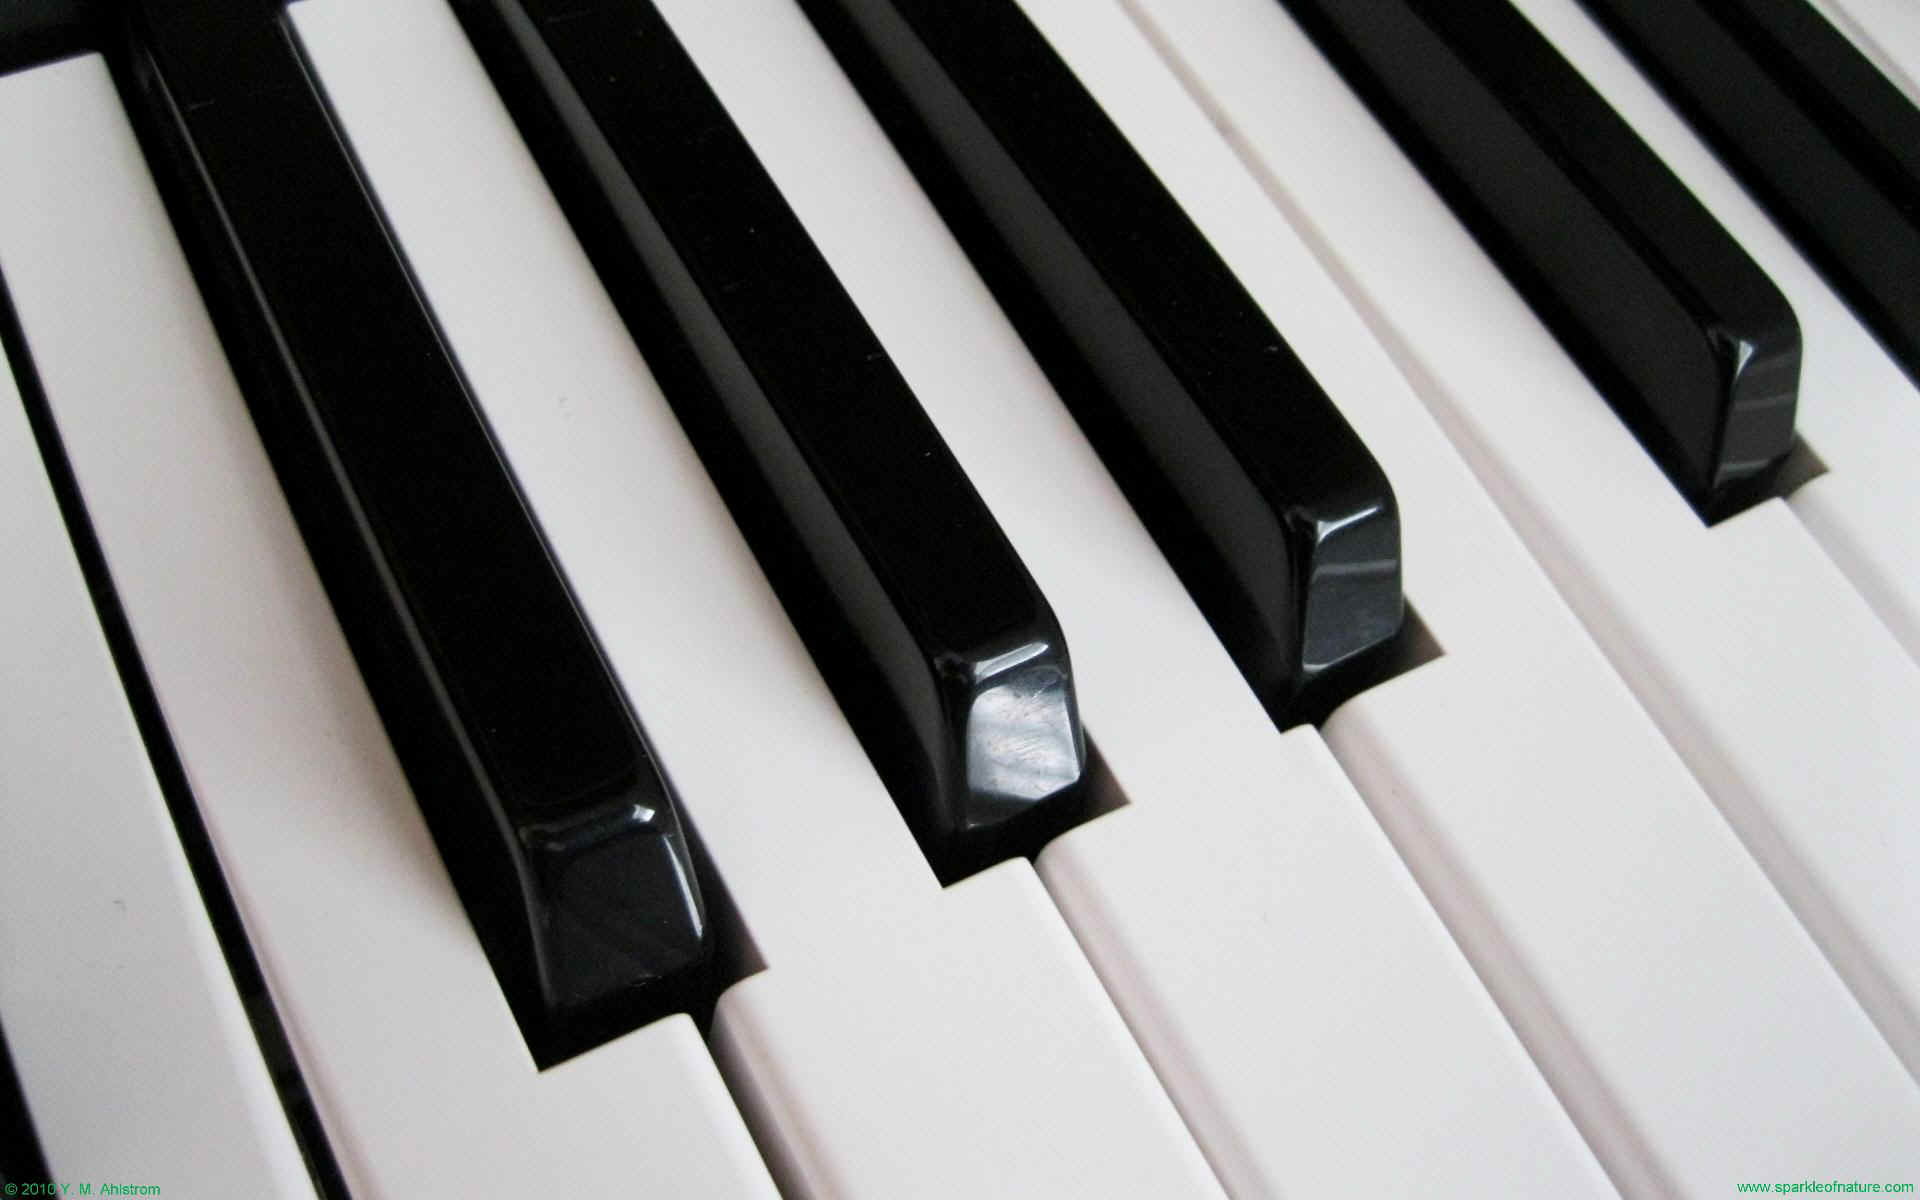 Keyboard Piano Wallpapers High Definition Scerbos Best Images About Keys On Pinterest The Killers Piano Girl 1920x1200